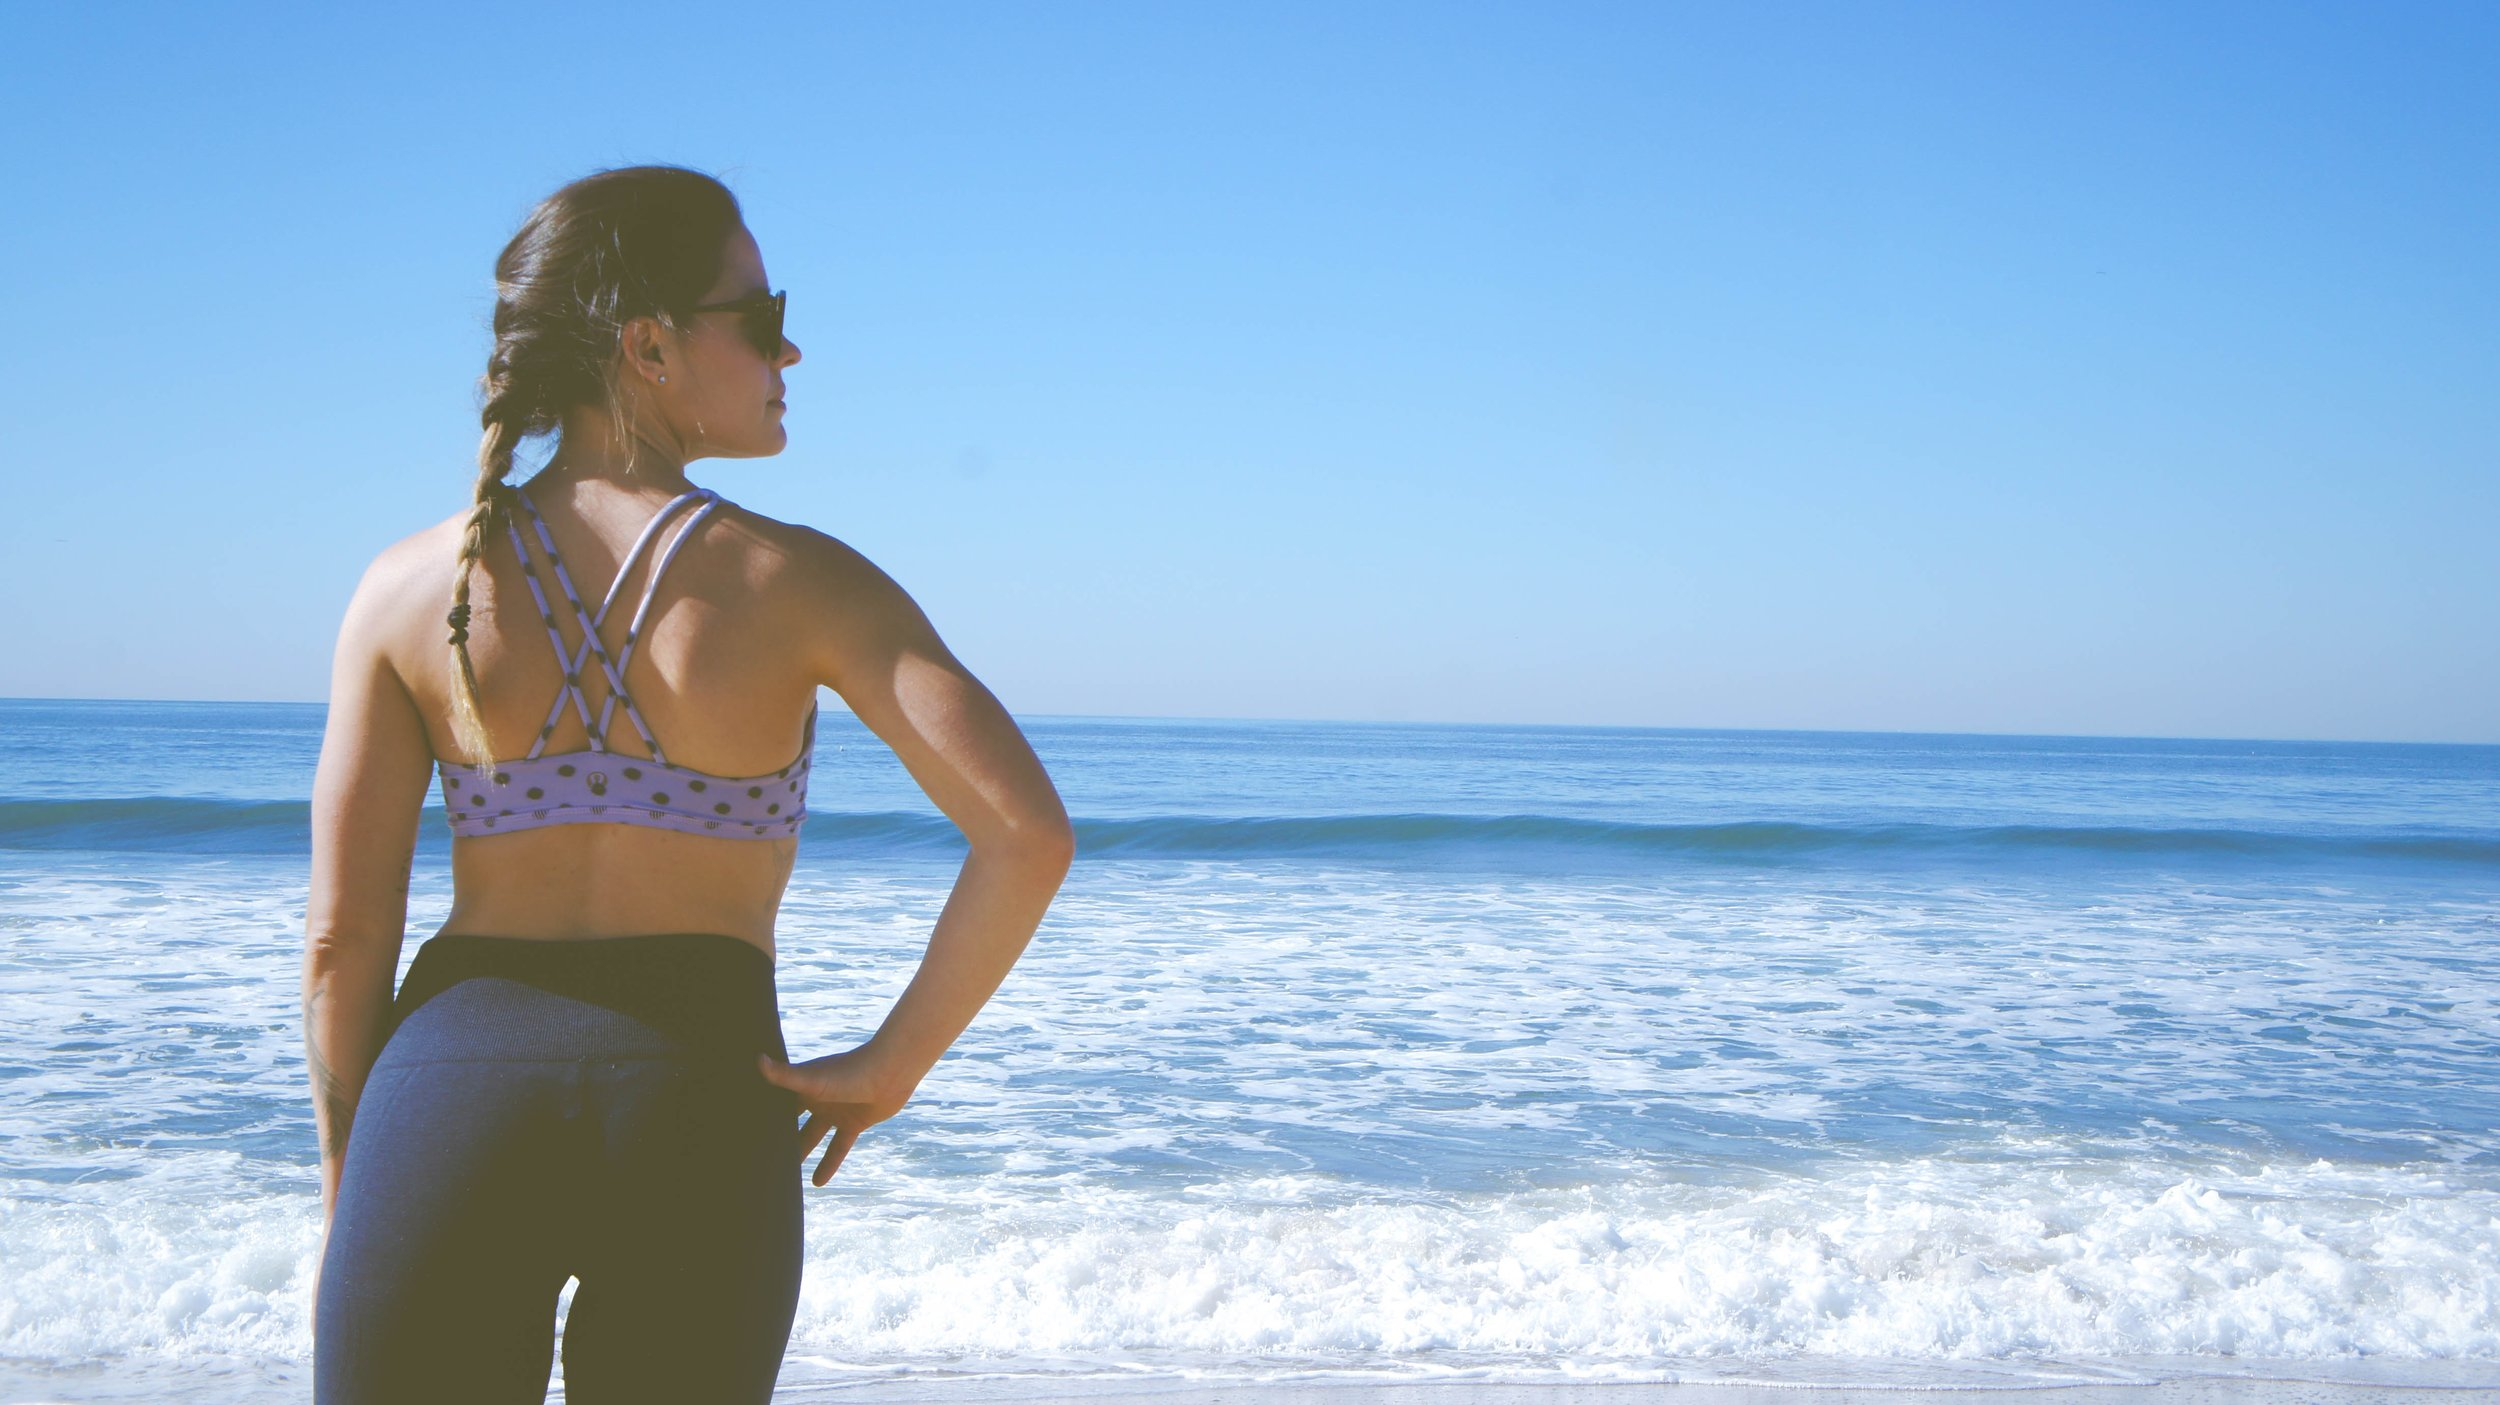 woman-healthy-fit-beach.jpg